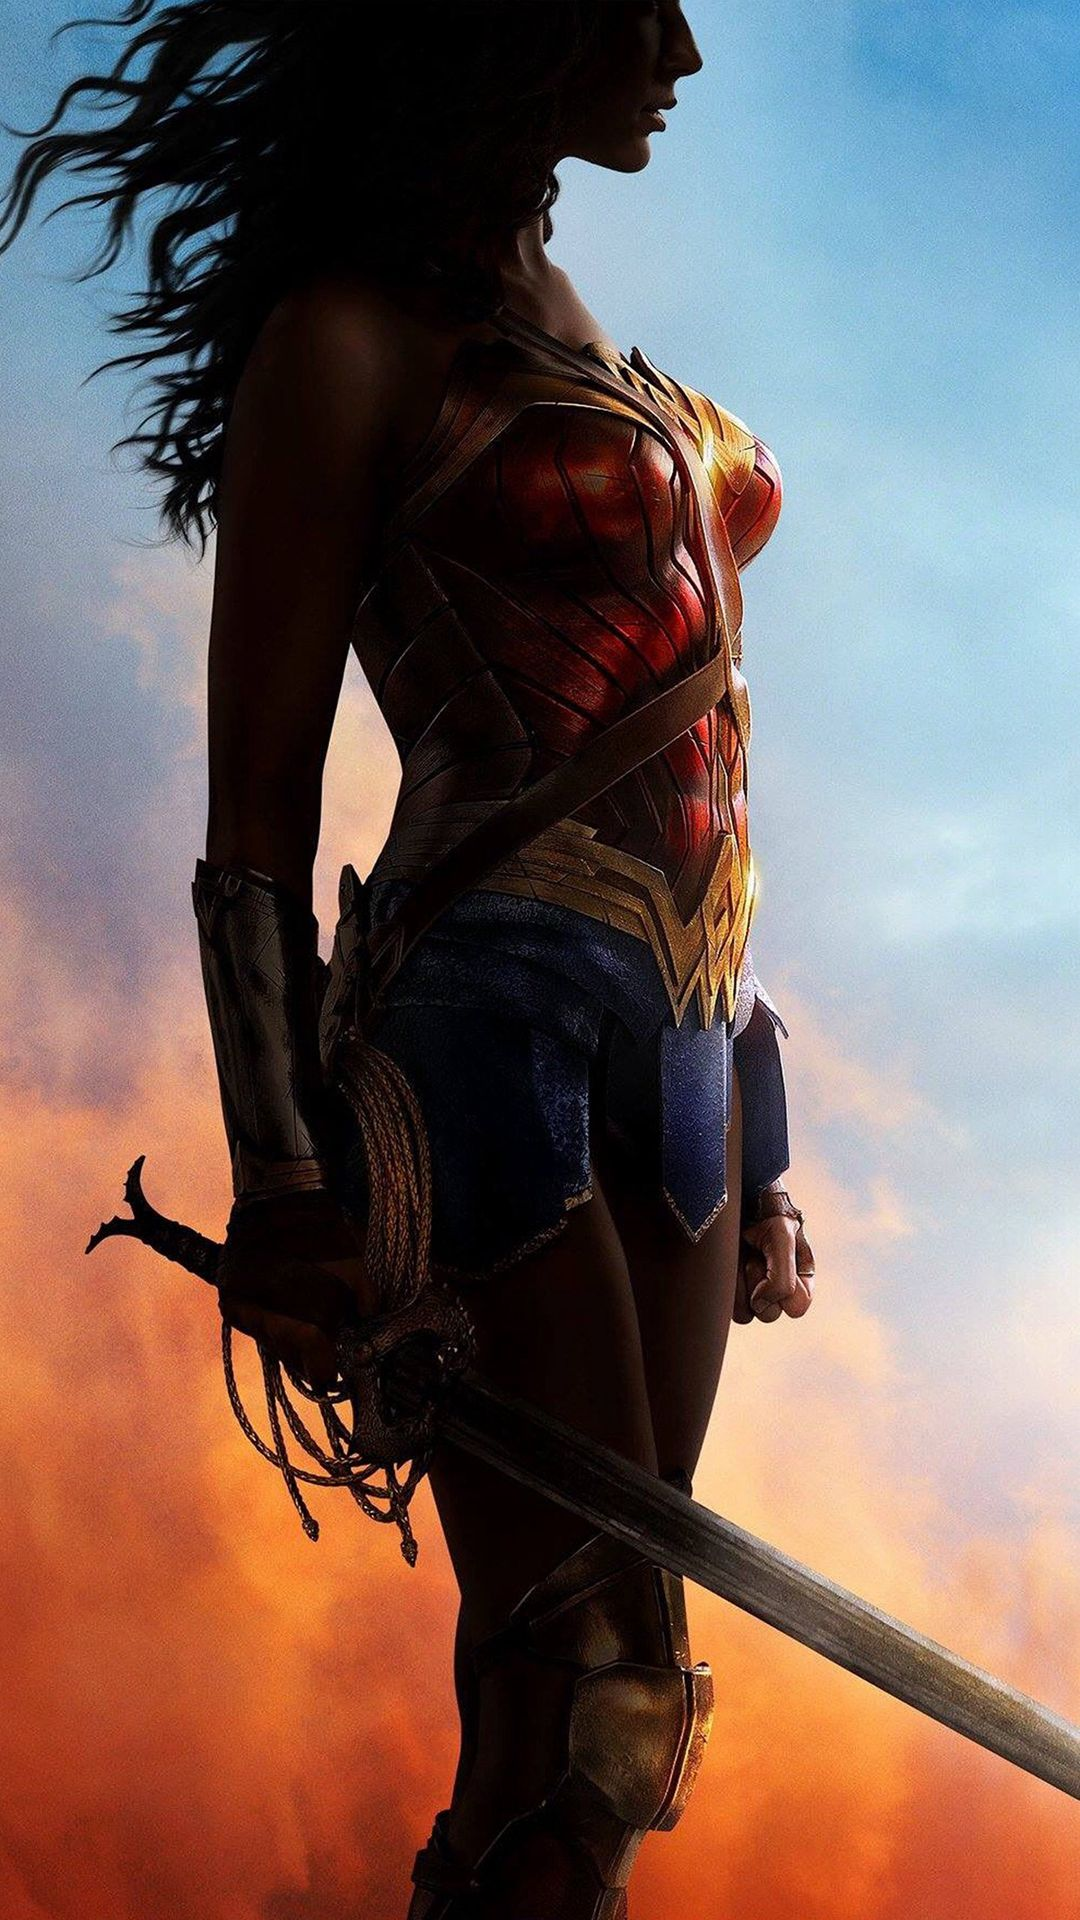 Wonder Woman Art Poster Hero Illustration IPhone 6 Wallpaper